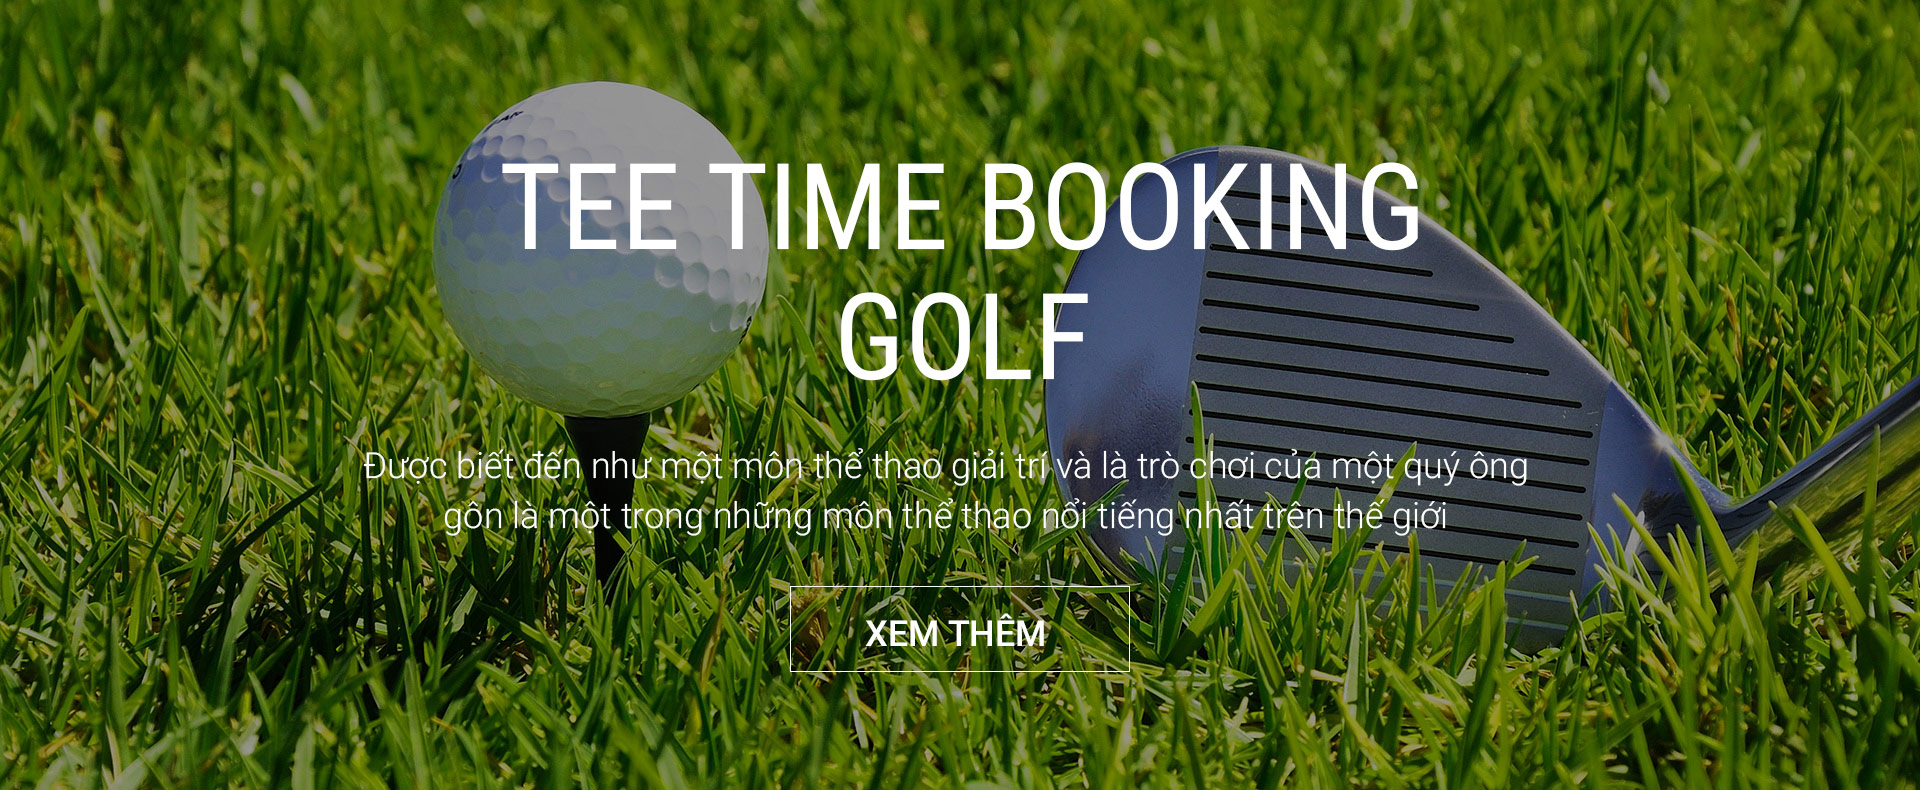 Tee Time Booking Golf